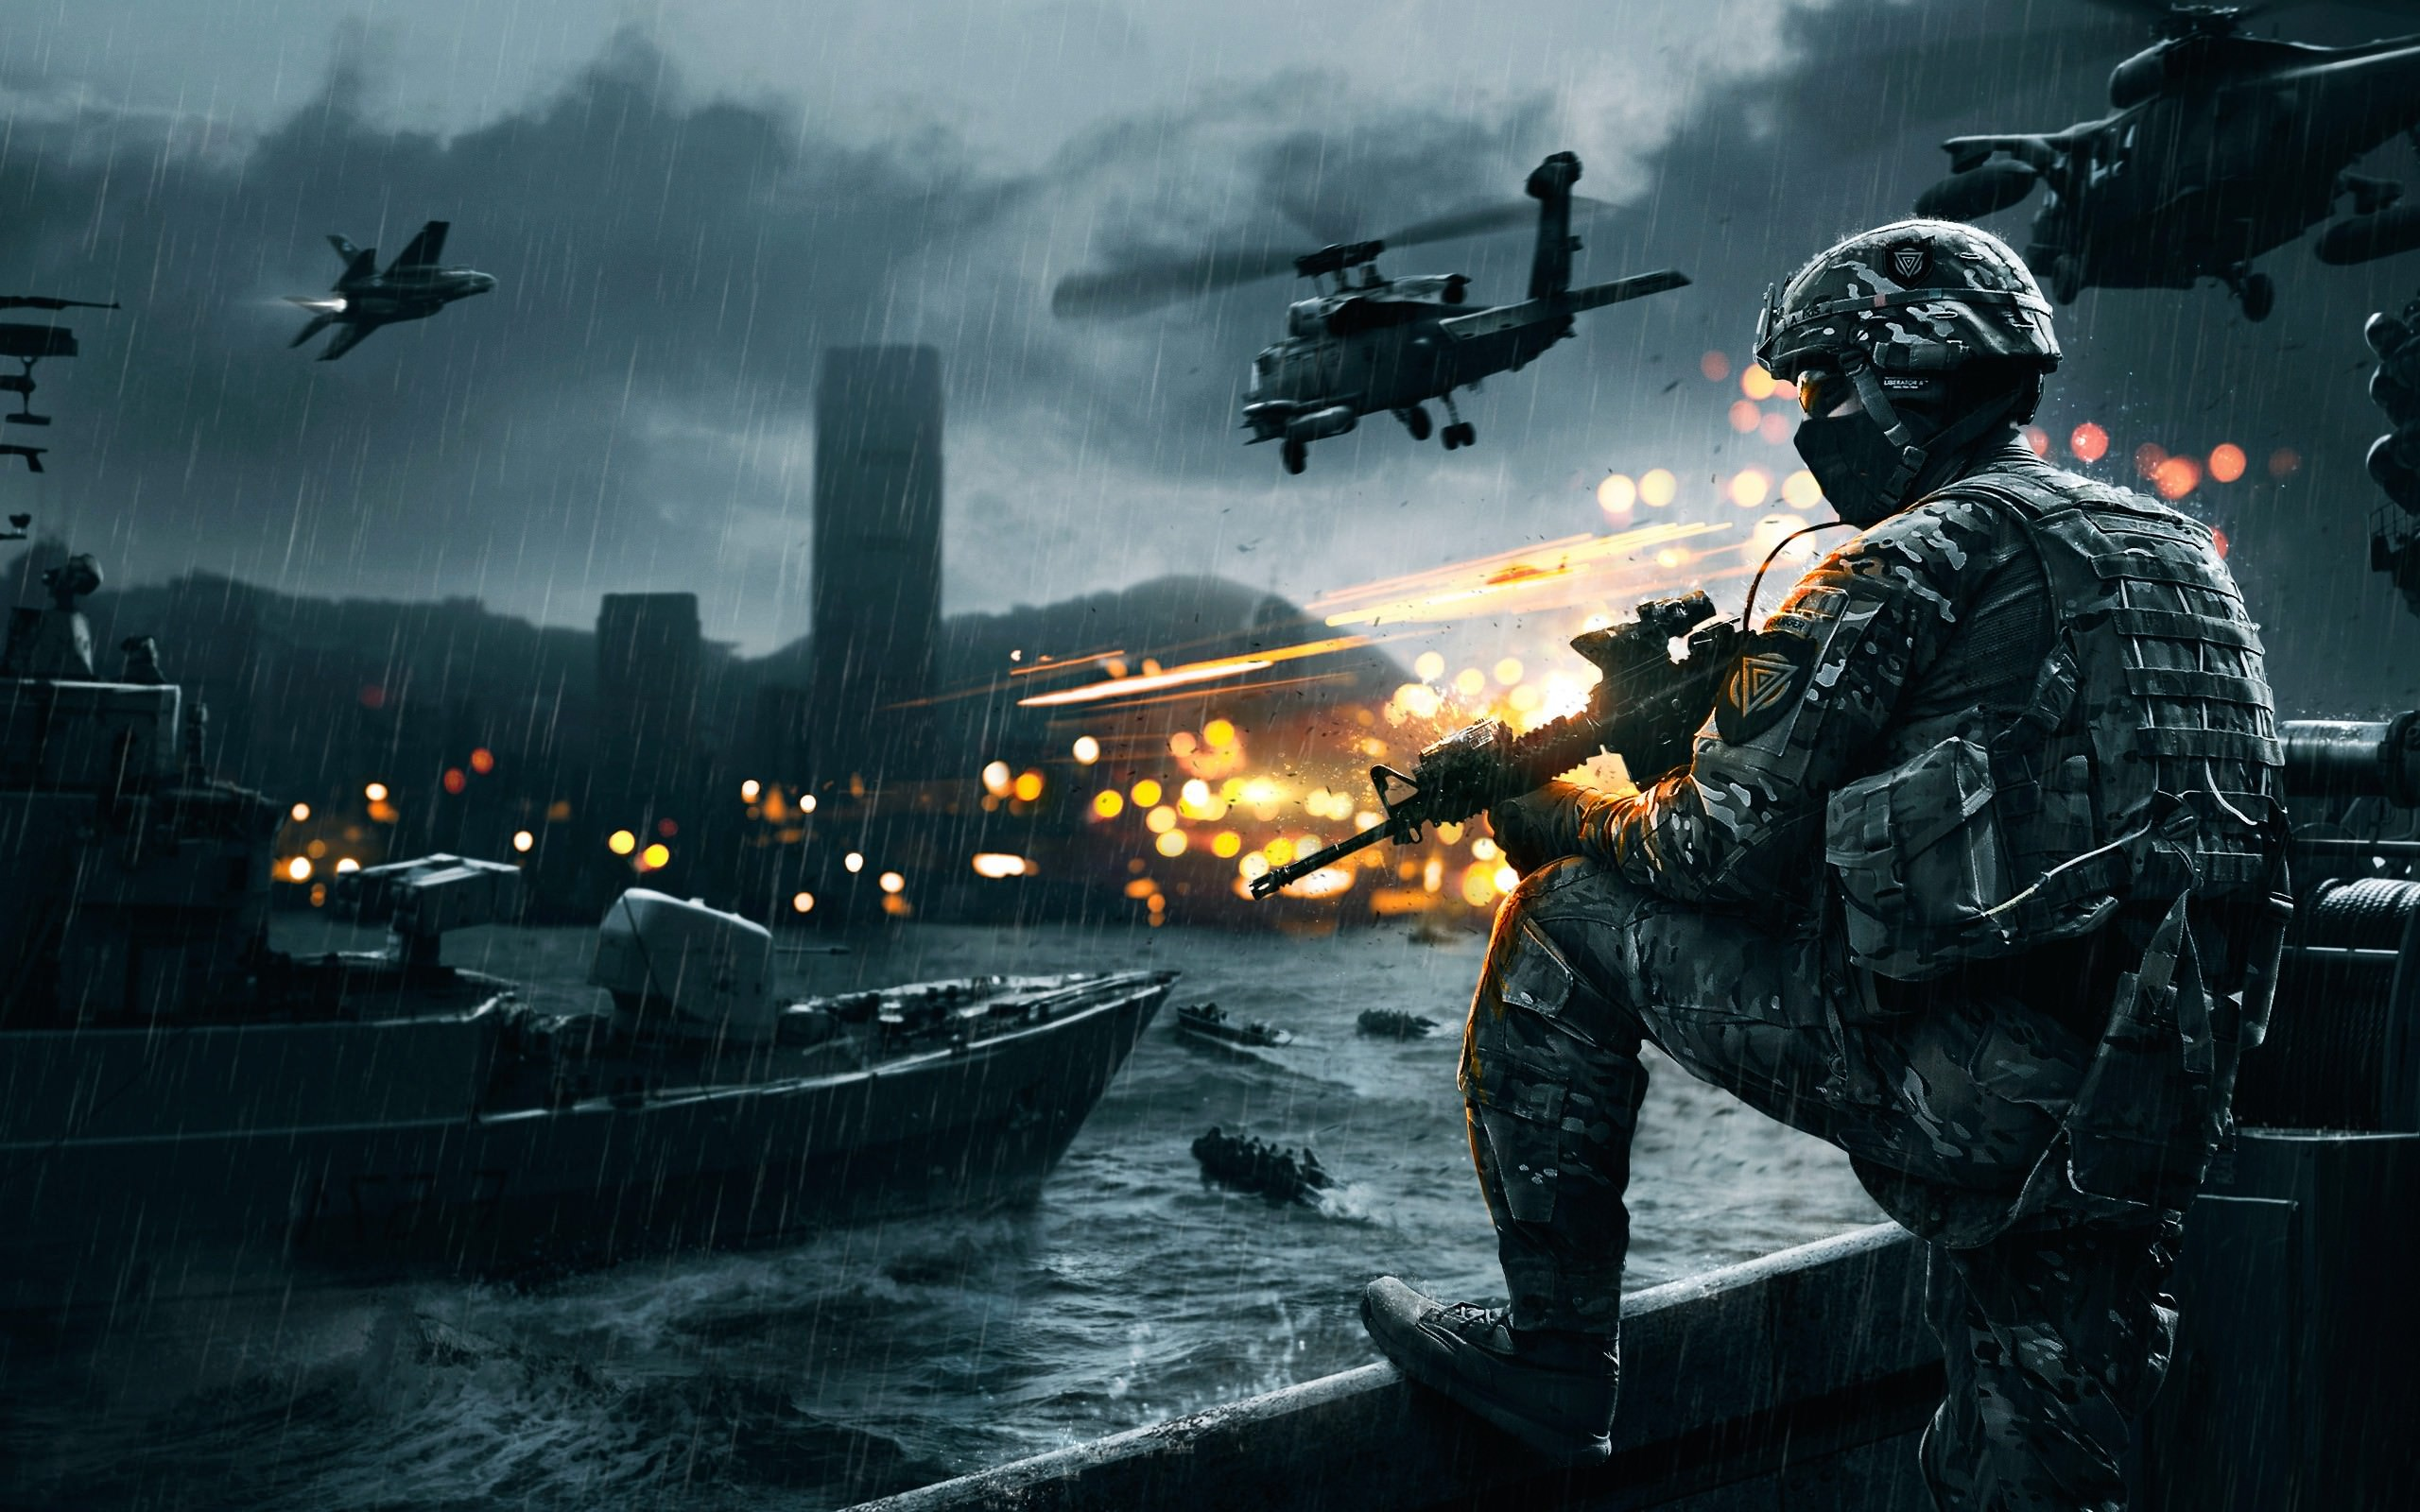 Full Military Battle 4k Wallpapers Top Free Full Military Battle 4k Backgrounds Wallpaperaccess